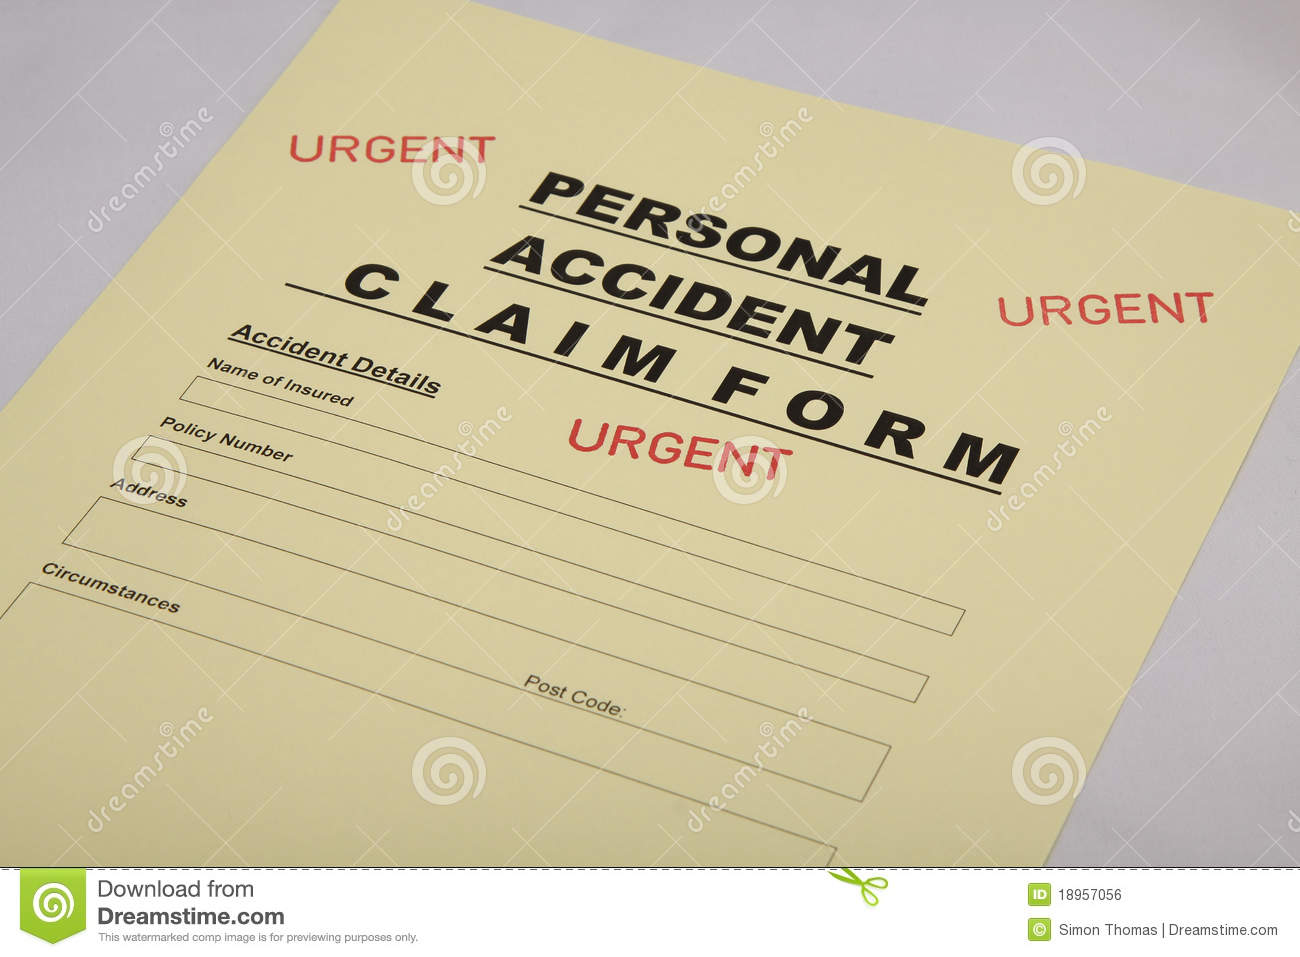 371 000 Non-uk Nationals Claiming Unemployment Benefit